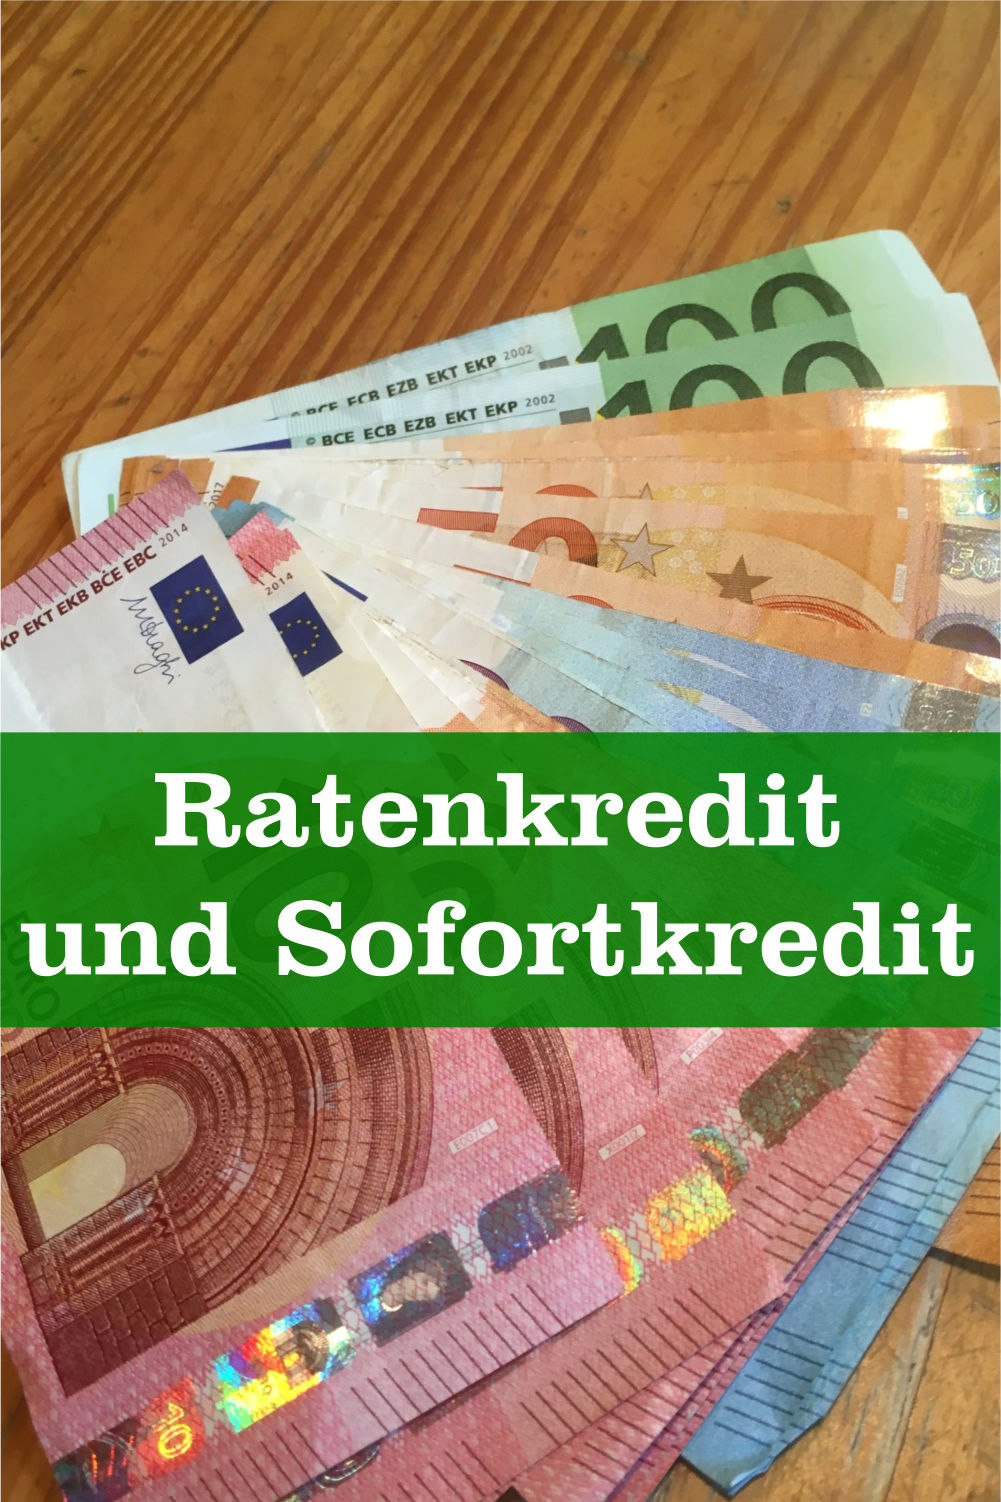 Ratenkredit und Sofortkredit